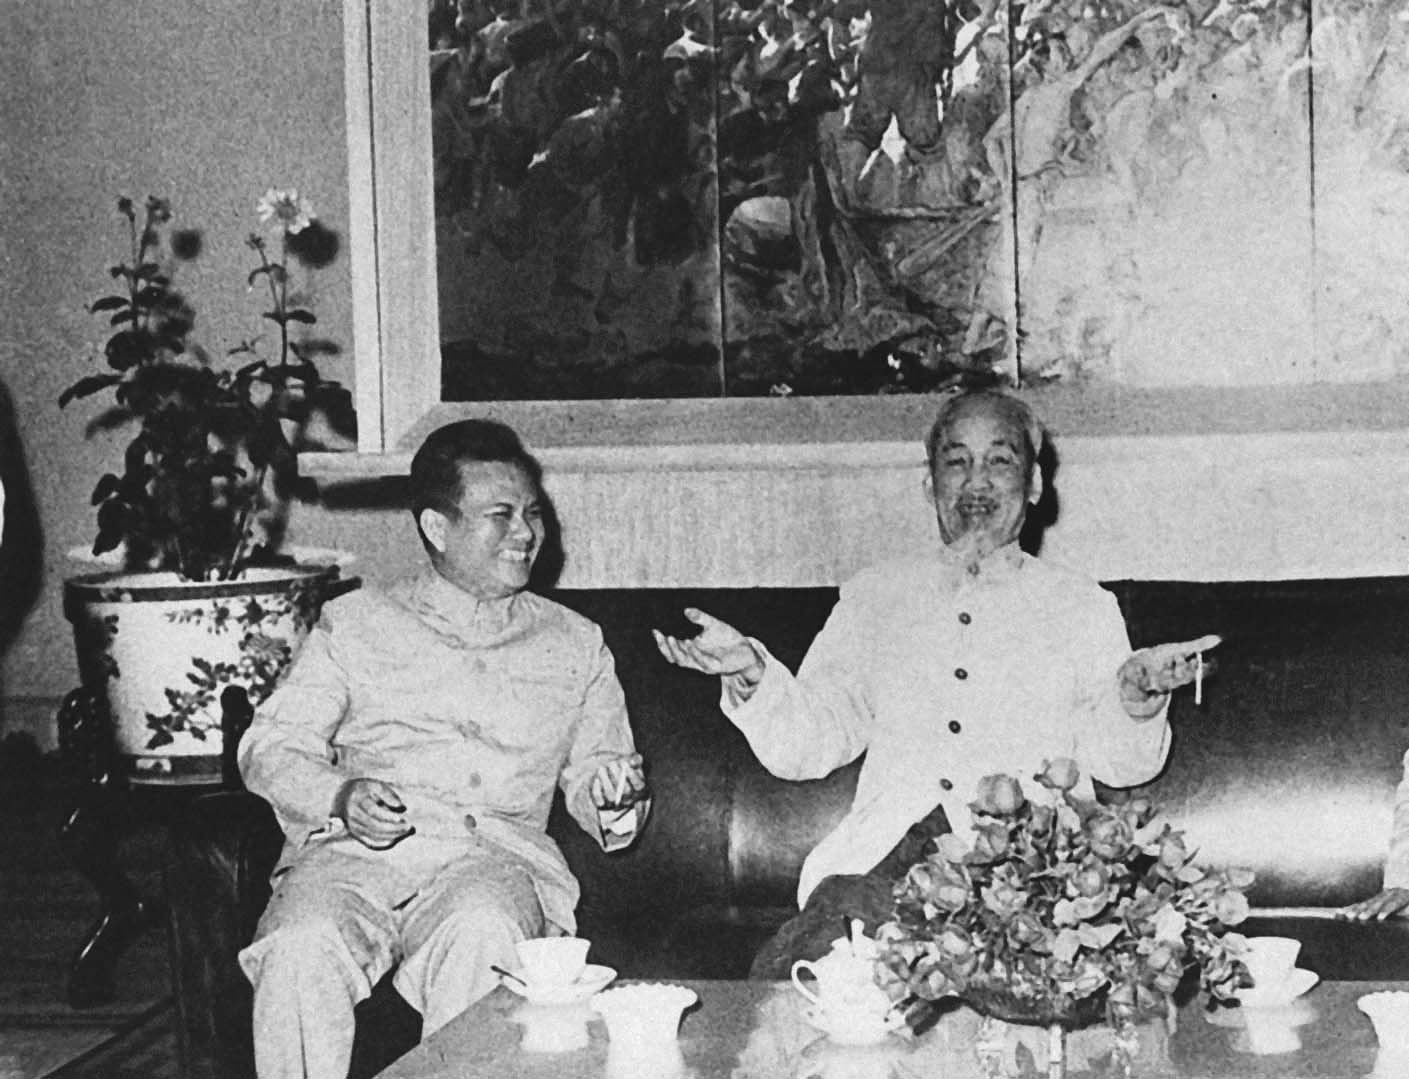 President Ho Chi Minh and comrade Cayxon Phomvihan, President of the People's Democratic Republic of Laos (February 8th, 1966)